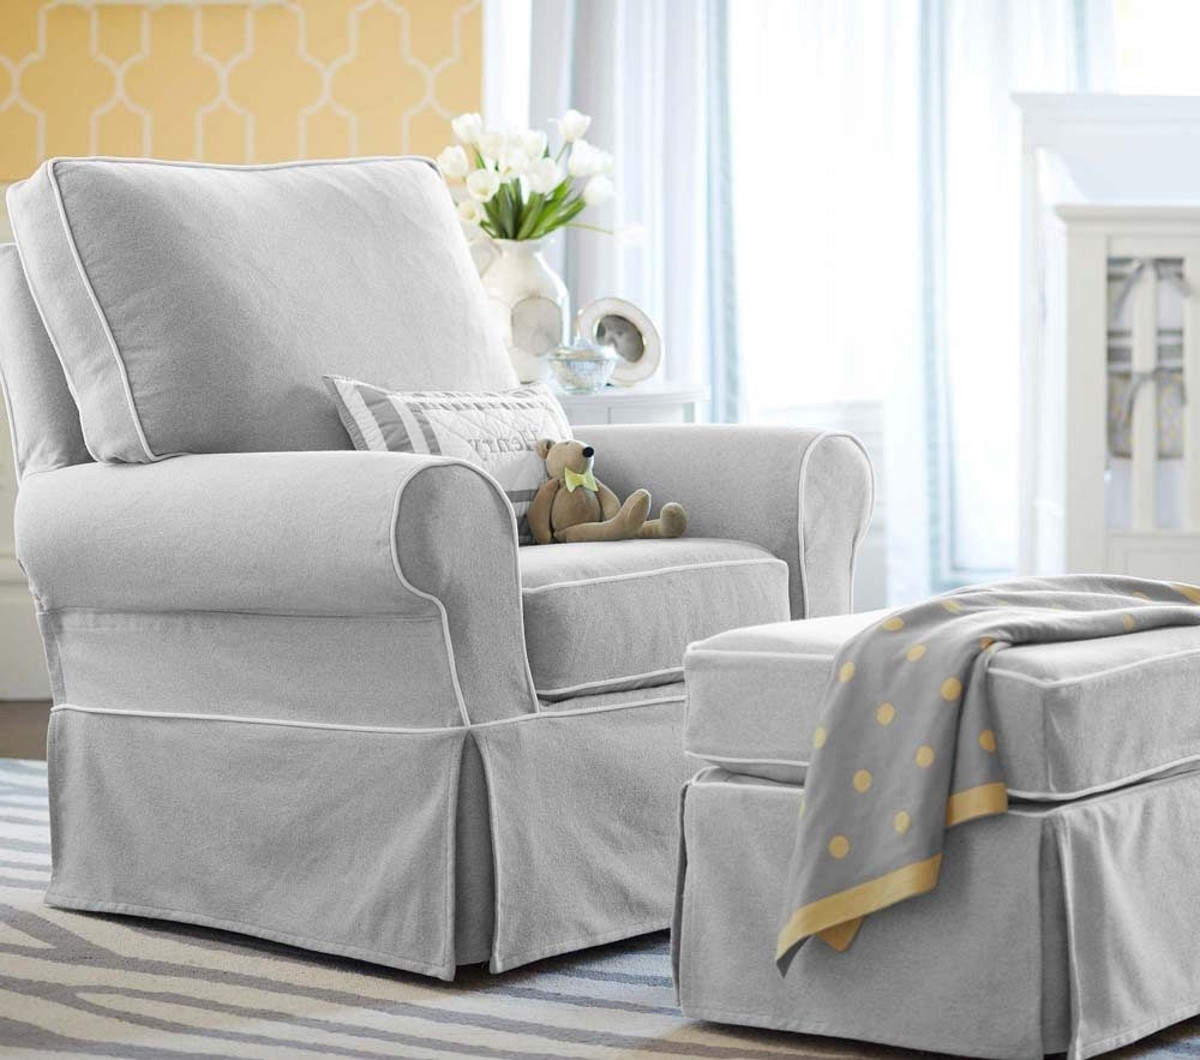 Recent The Most Comfortable Nursing Chair & Ottoman (View 7 of 15)